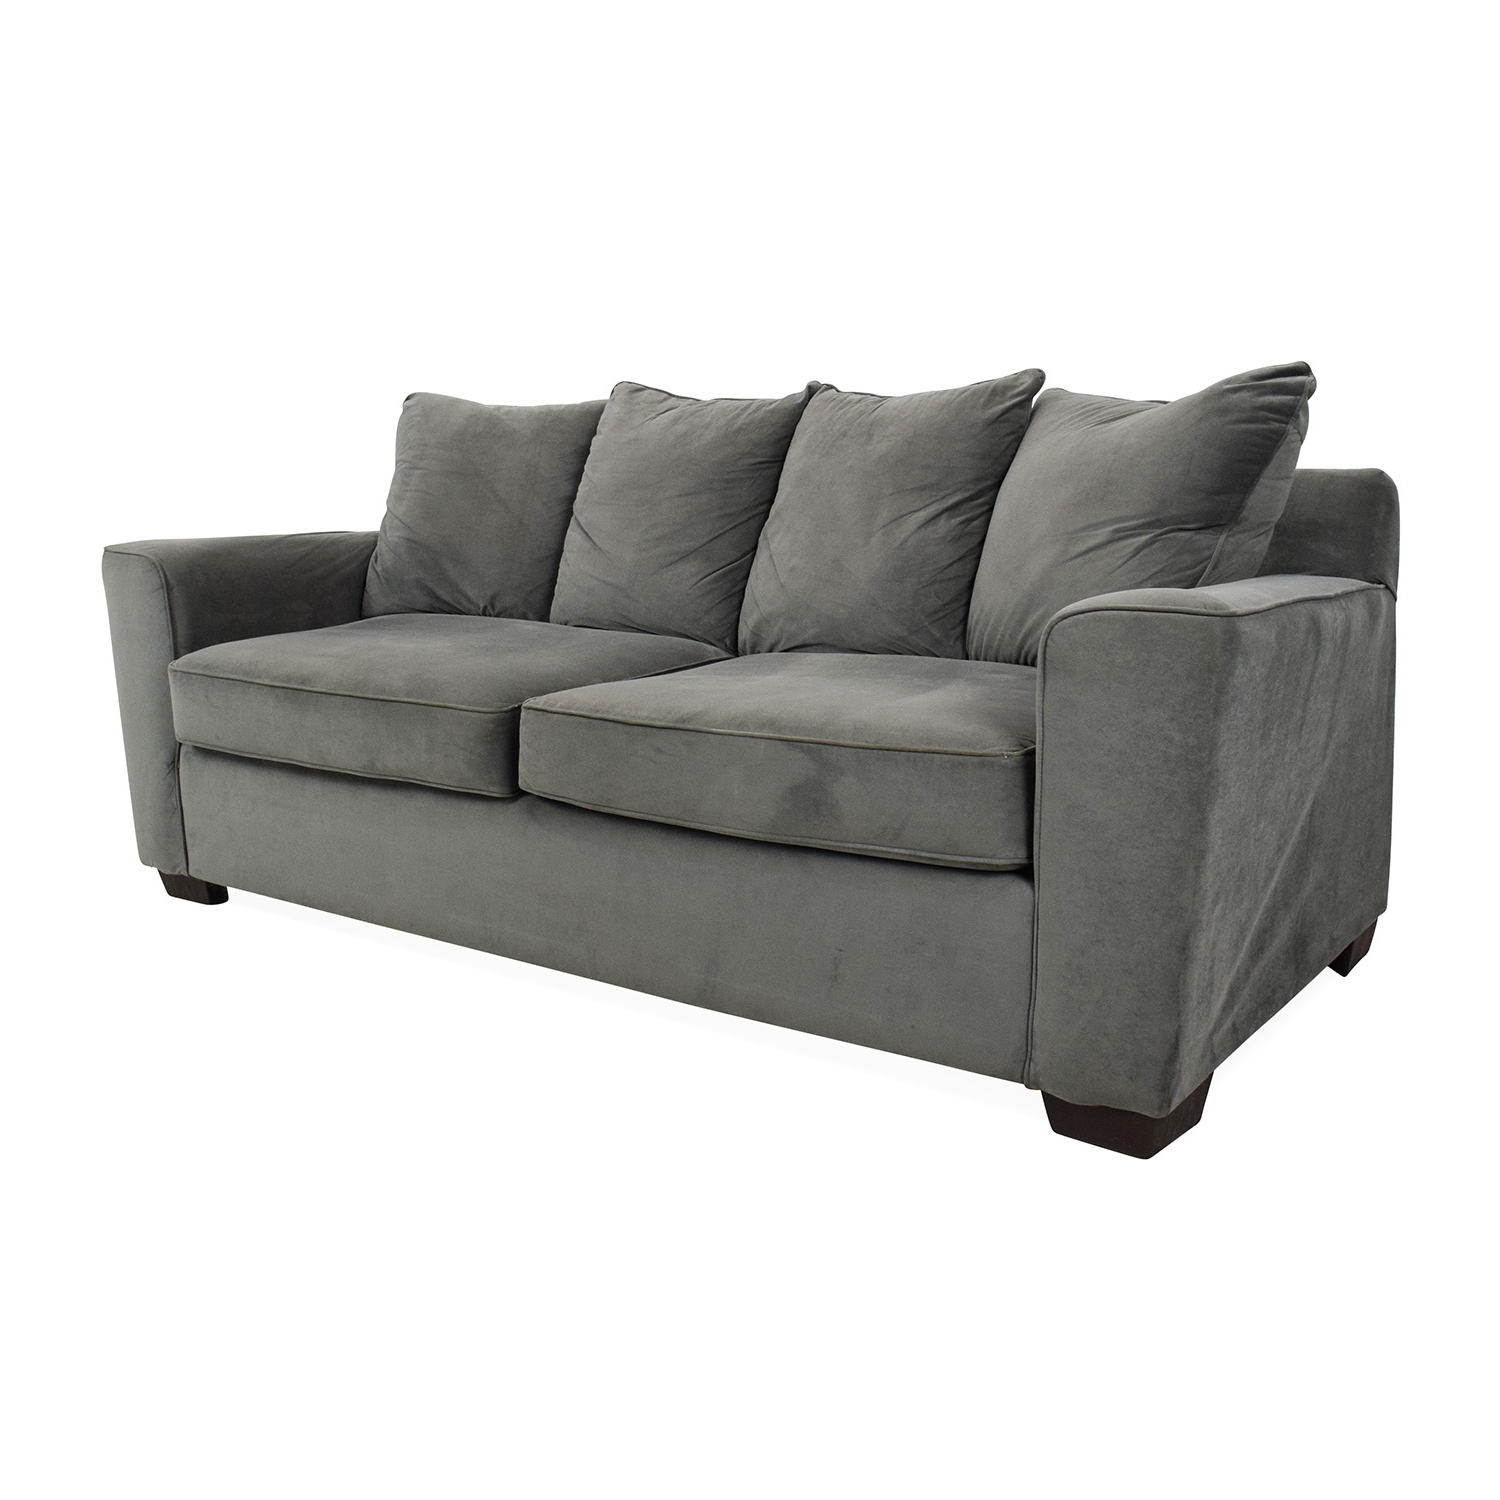 [%53% Off – Jennifer Convertibles Jennifer Convertibles Grey Couch For Well Liked Jennifer Sofas|Jennifer Sofas For Fashionable 53% Off – Jennifer Convertibles Jennifer Convertibles Grey Couch|Well Known Jennifer Sofas With Regard To 53% Off – Jennifer Convertibles Jennifer Convertibles Grey Couch|Well Liked 53% Off – Jennifer Convertibles Jennifer Convertibles Grey Couch Regarding Jennifer Sofas%] (View 2 of 20)